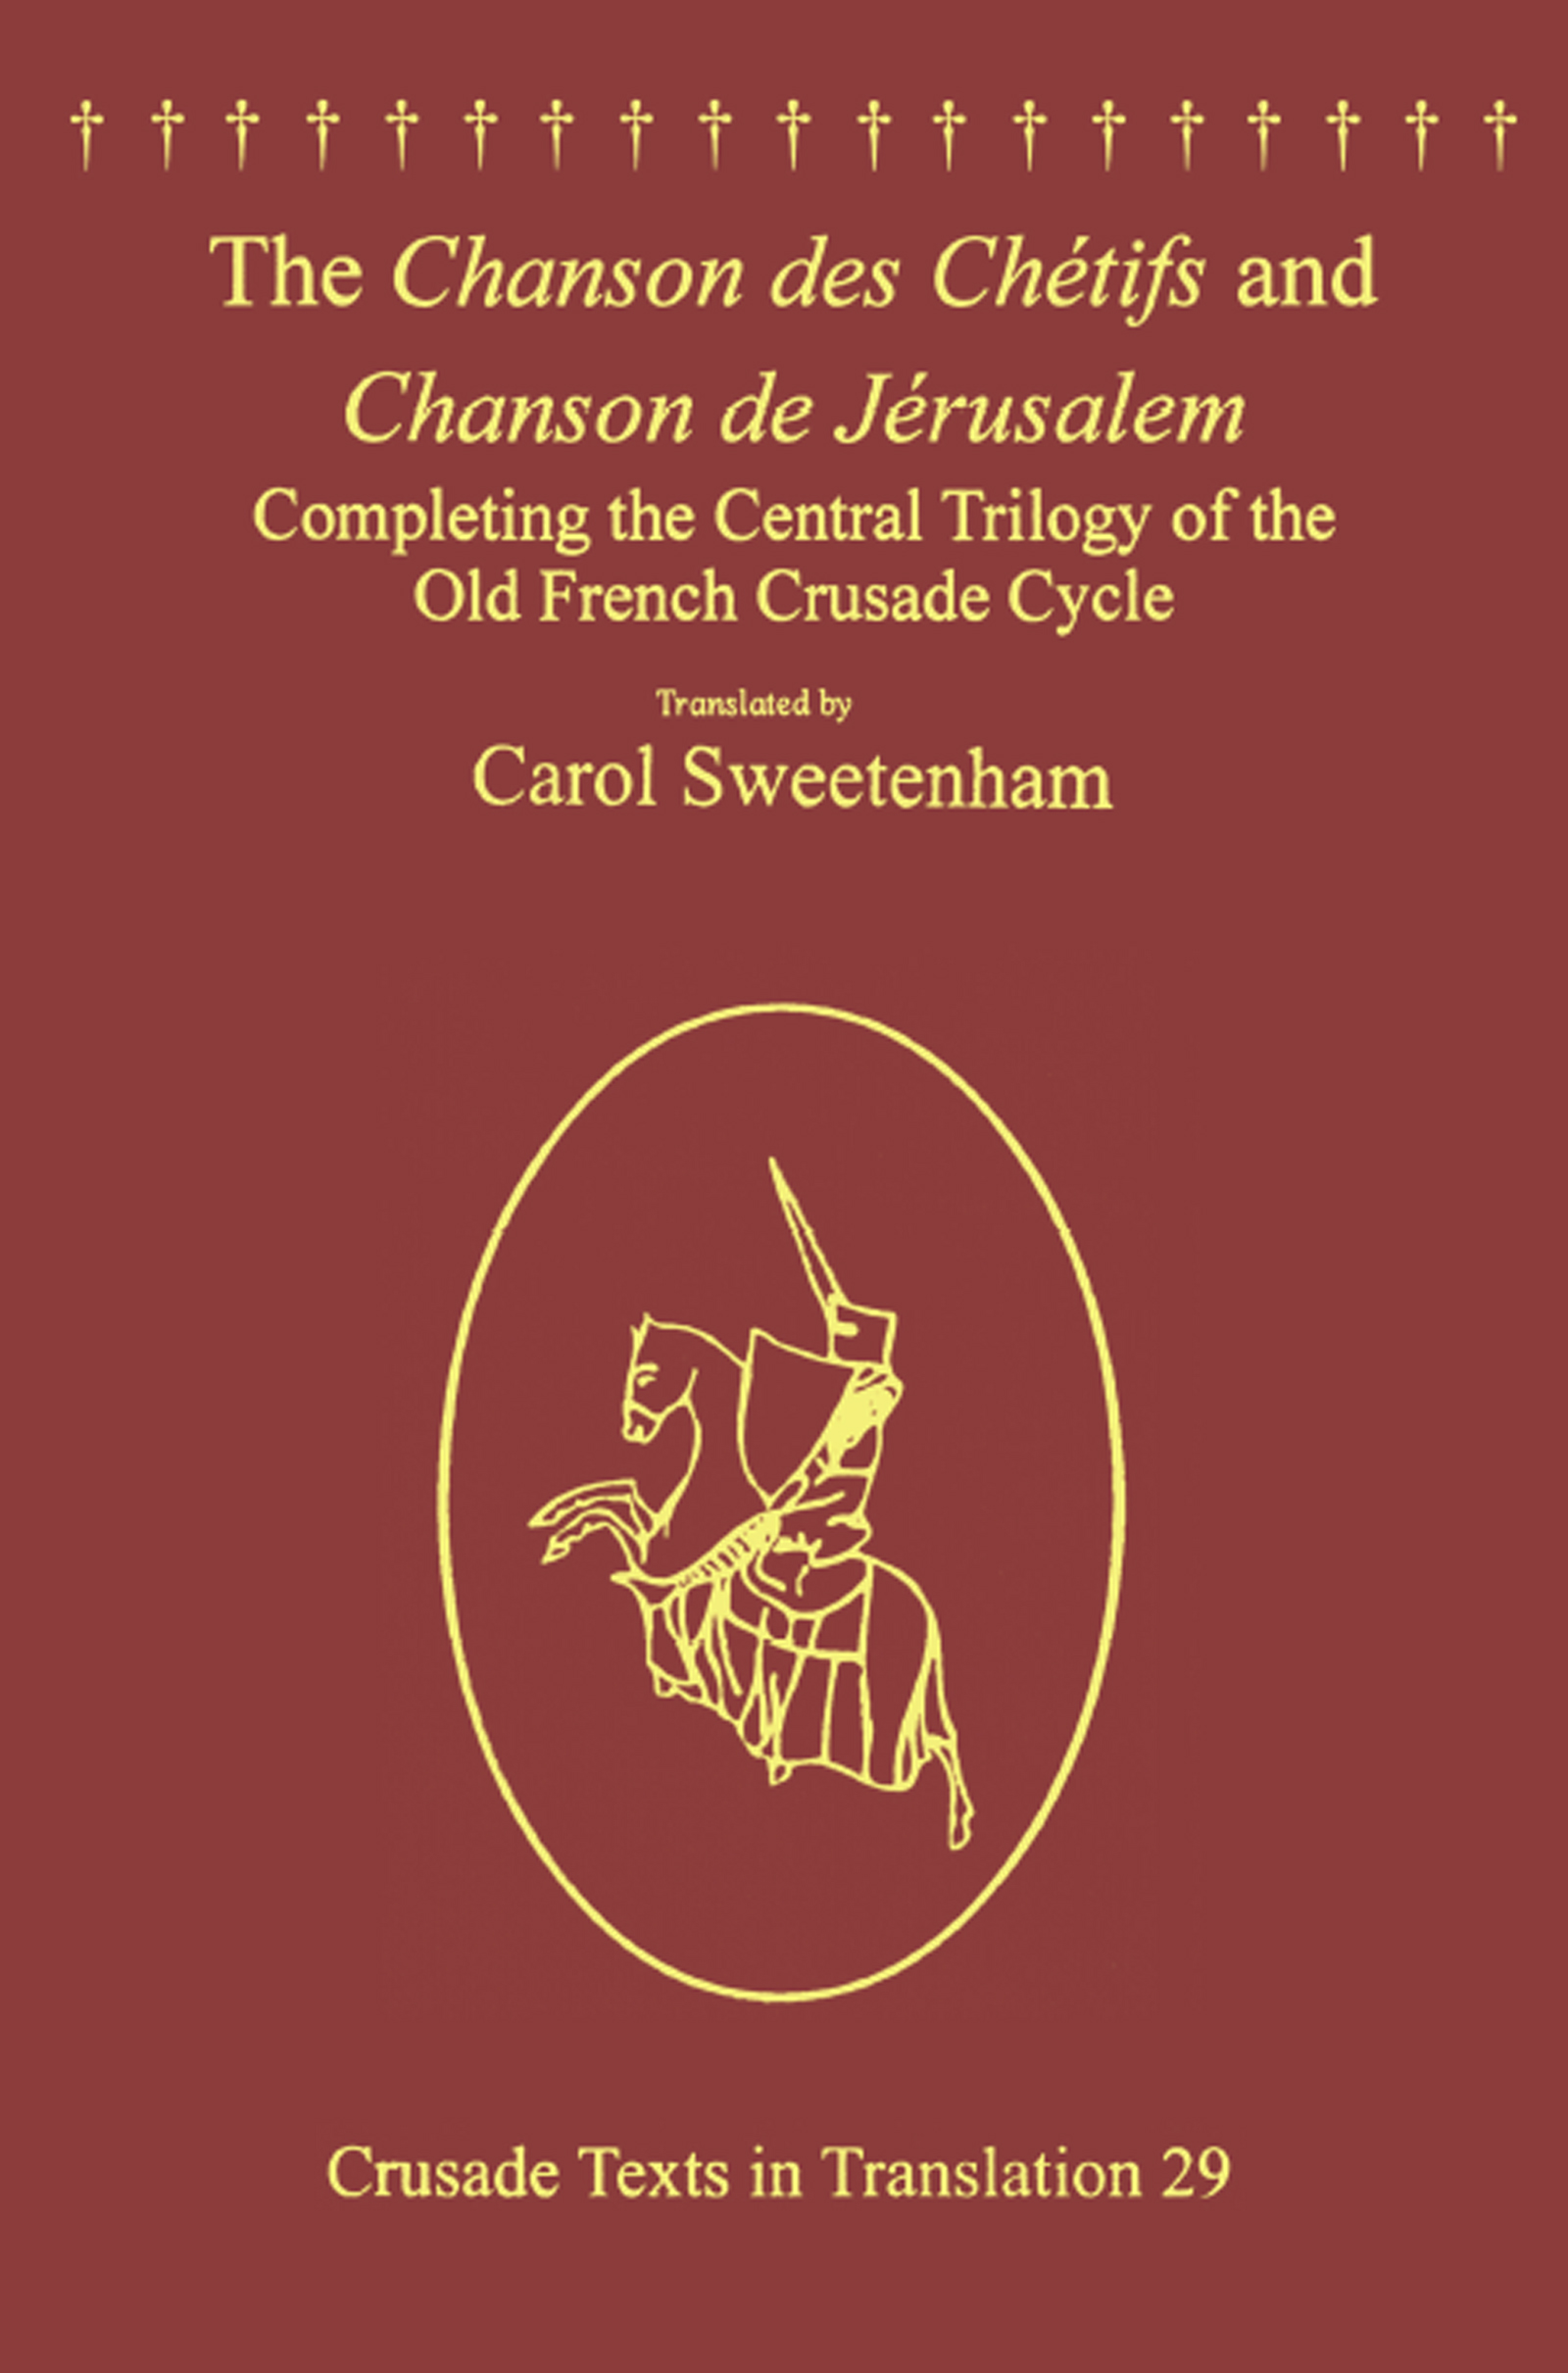 The Chanson des Chétifs and Chanson de Jérusalem: Completing the Central Trilogy of the Old French Crusade Cycle book cover